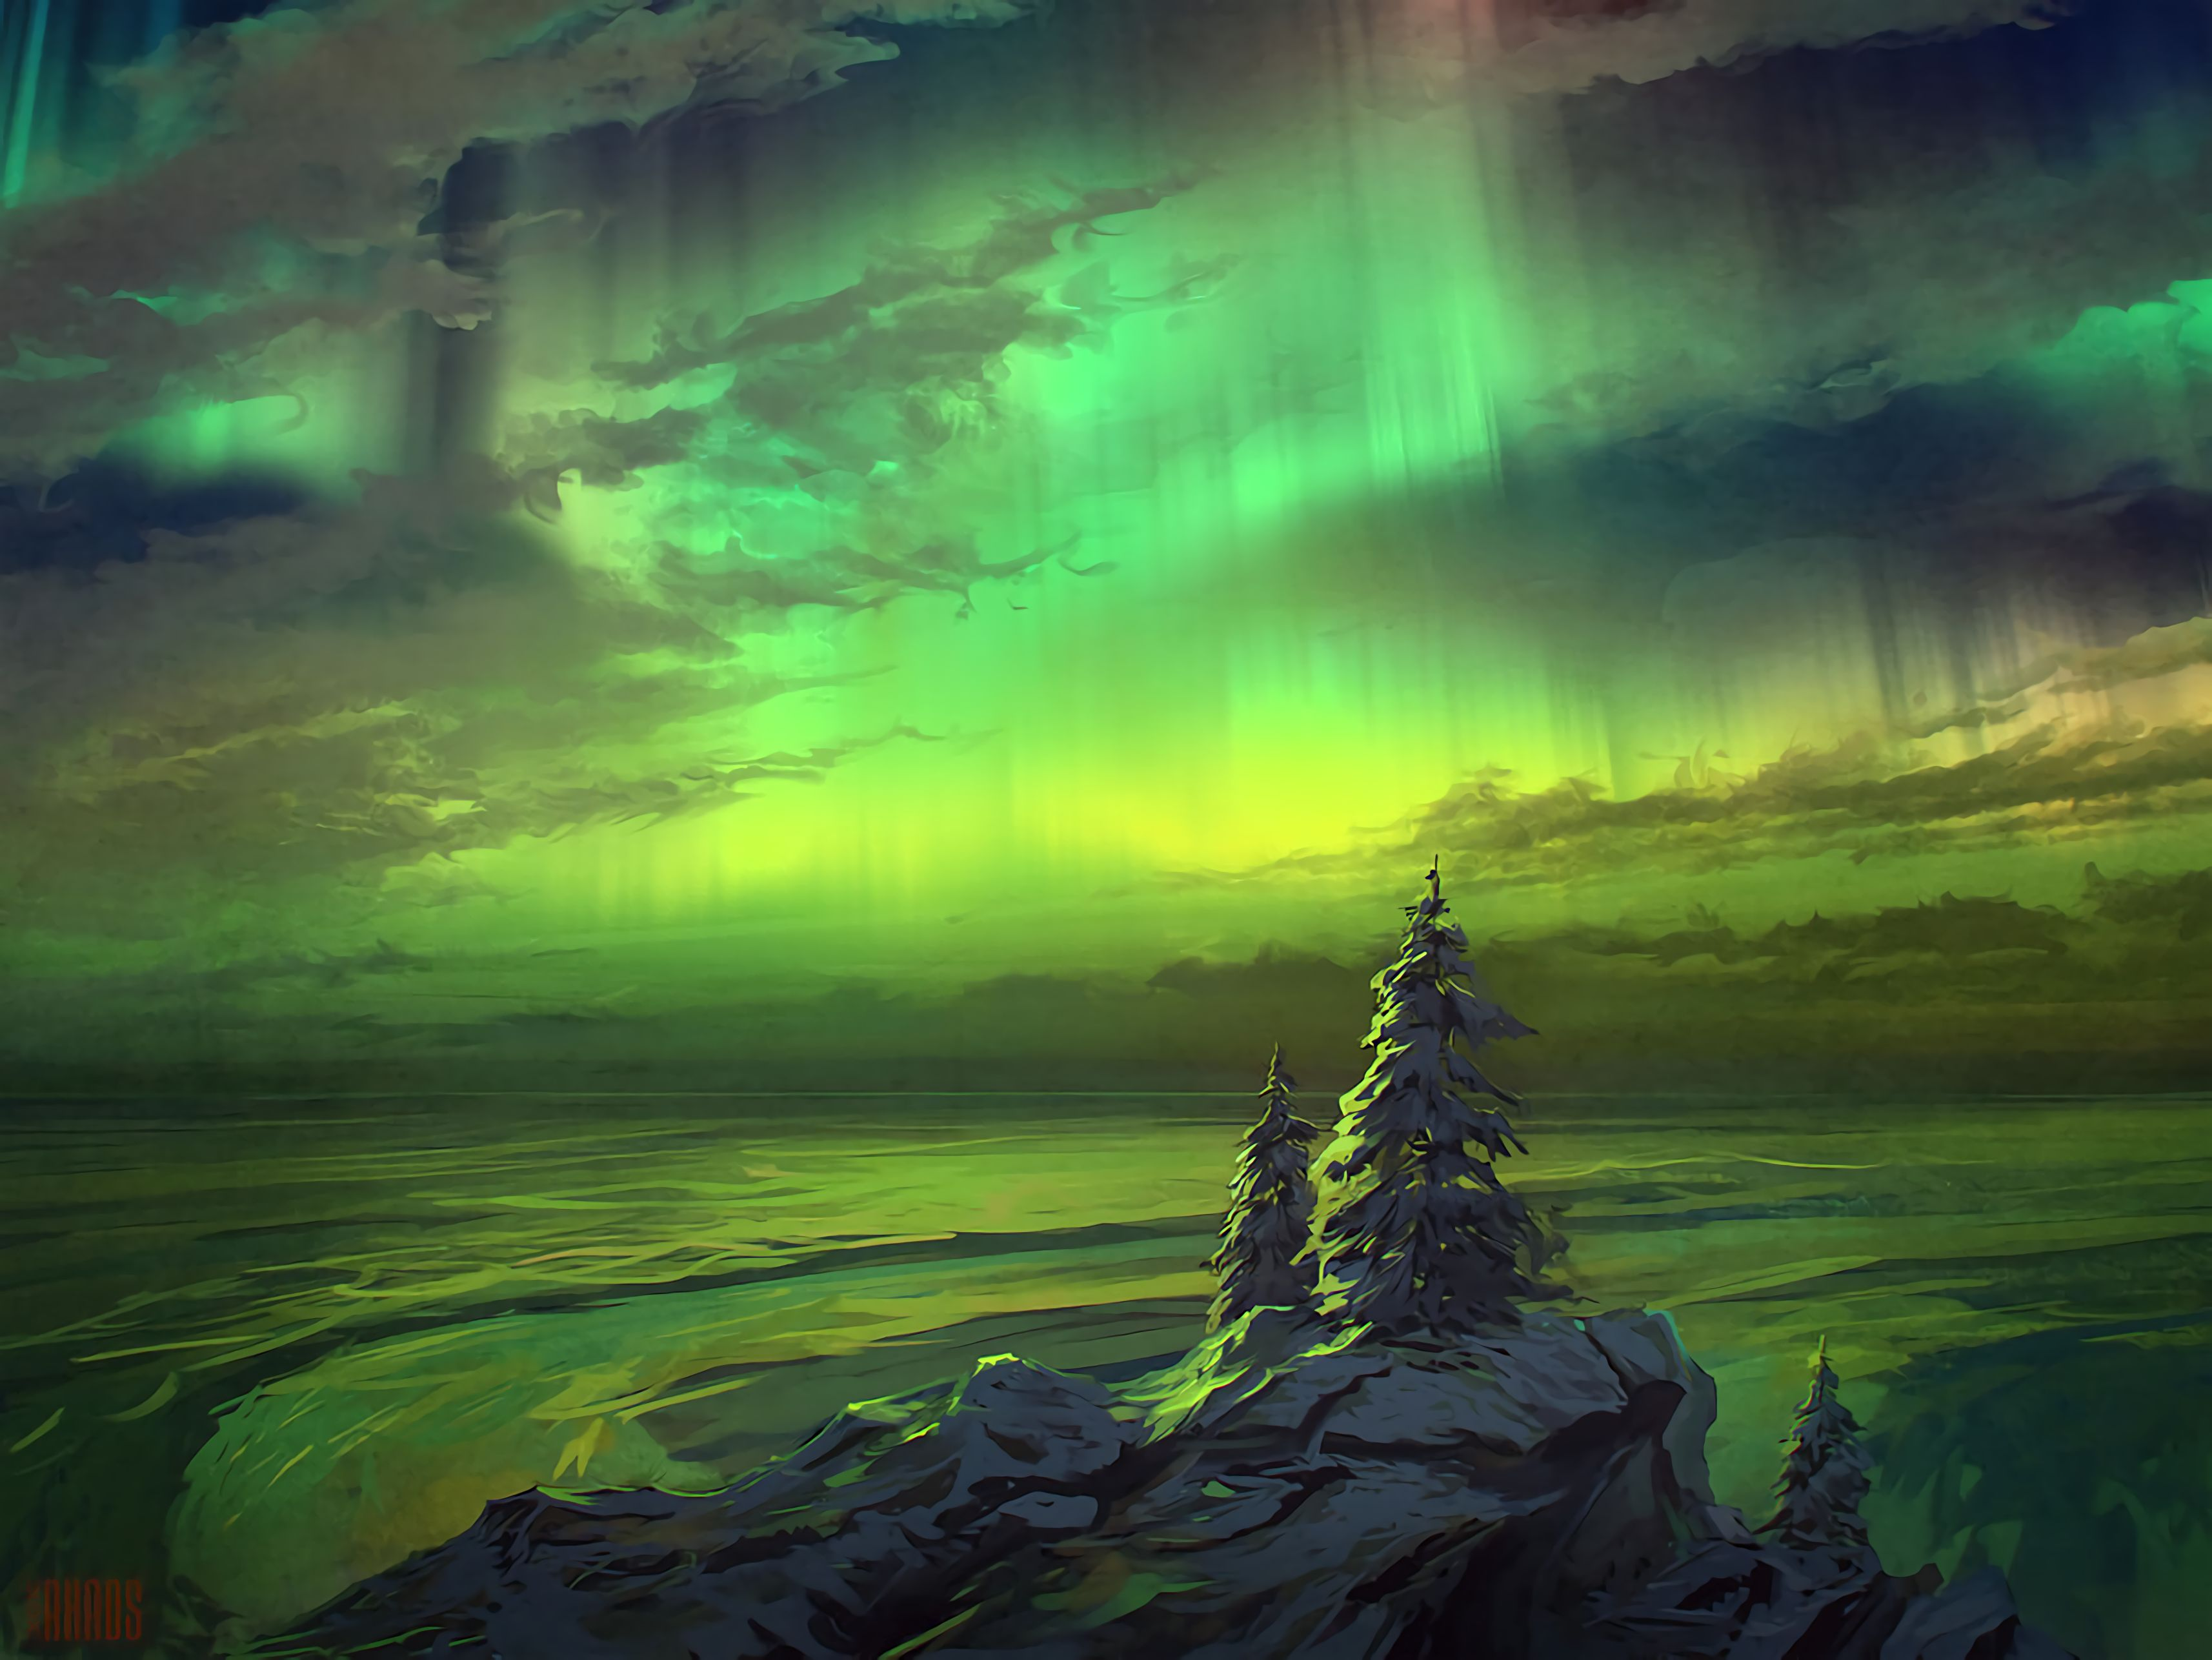 155116 download wallpaper Northern Lights, Aurora Borealis, Trees, Snow Covered, Snowbound, Art screensavers and pictures for free